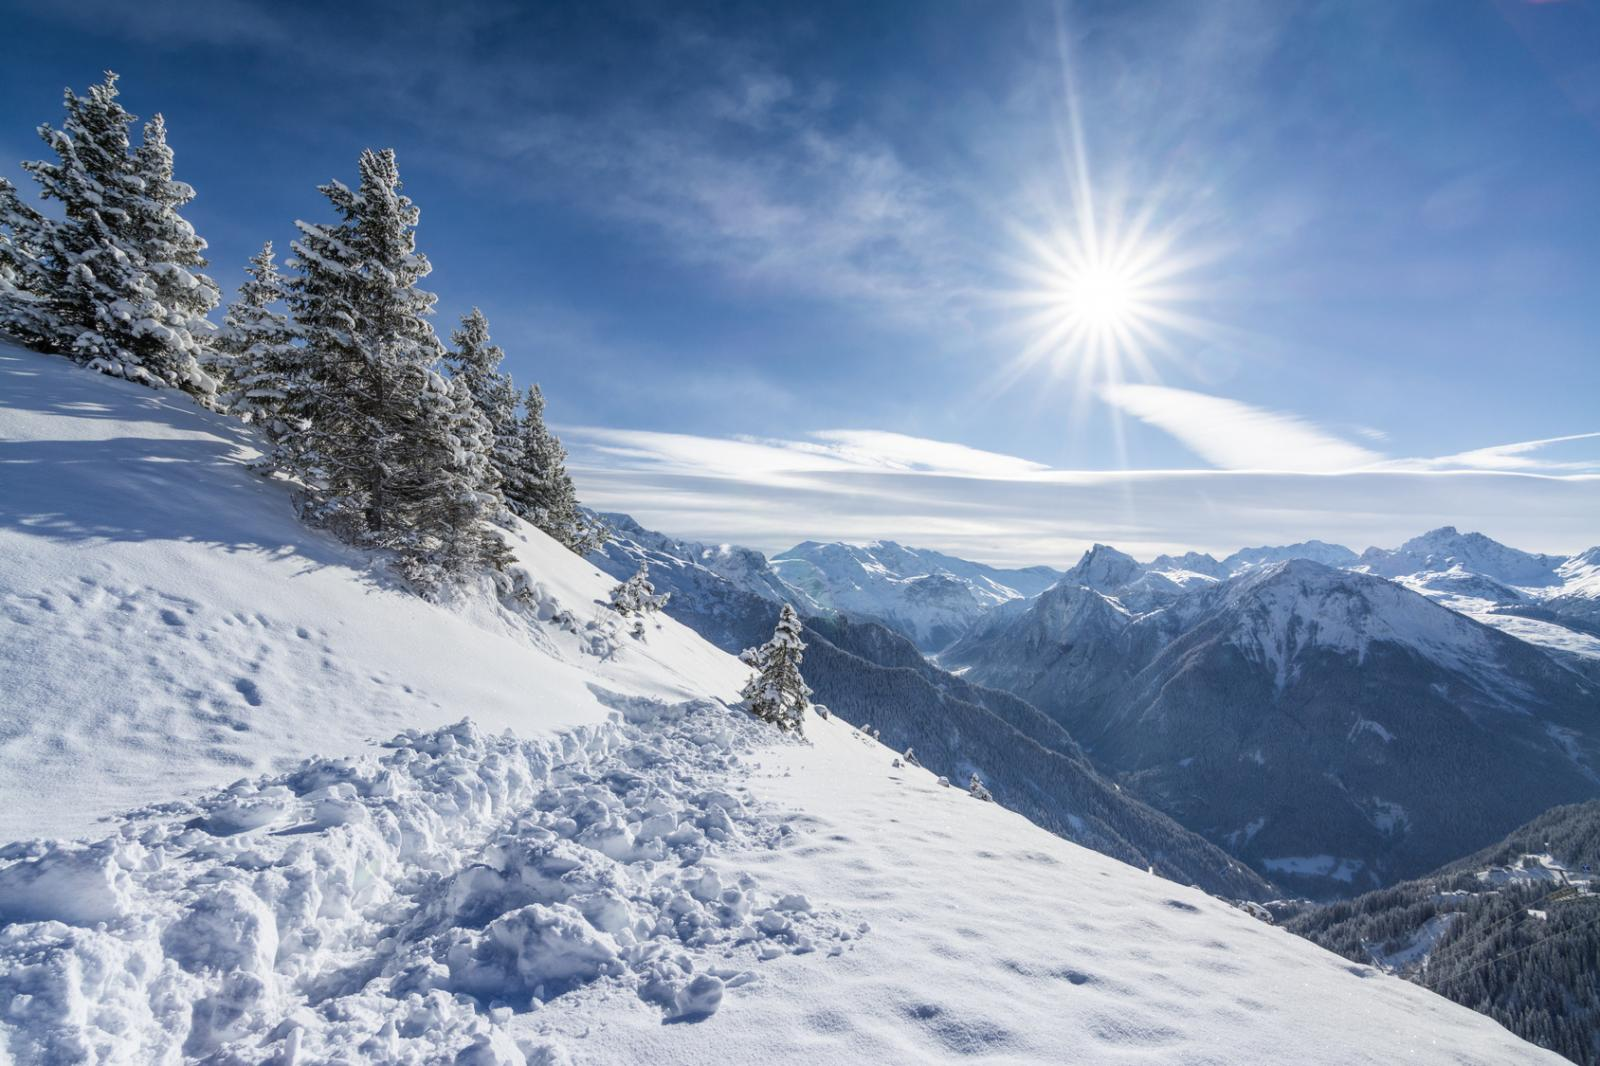 The End of the Alps season nears, but Winter makes a return